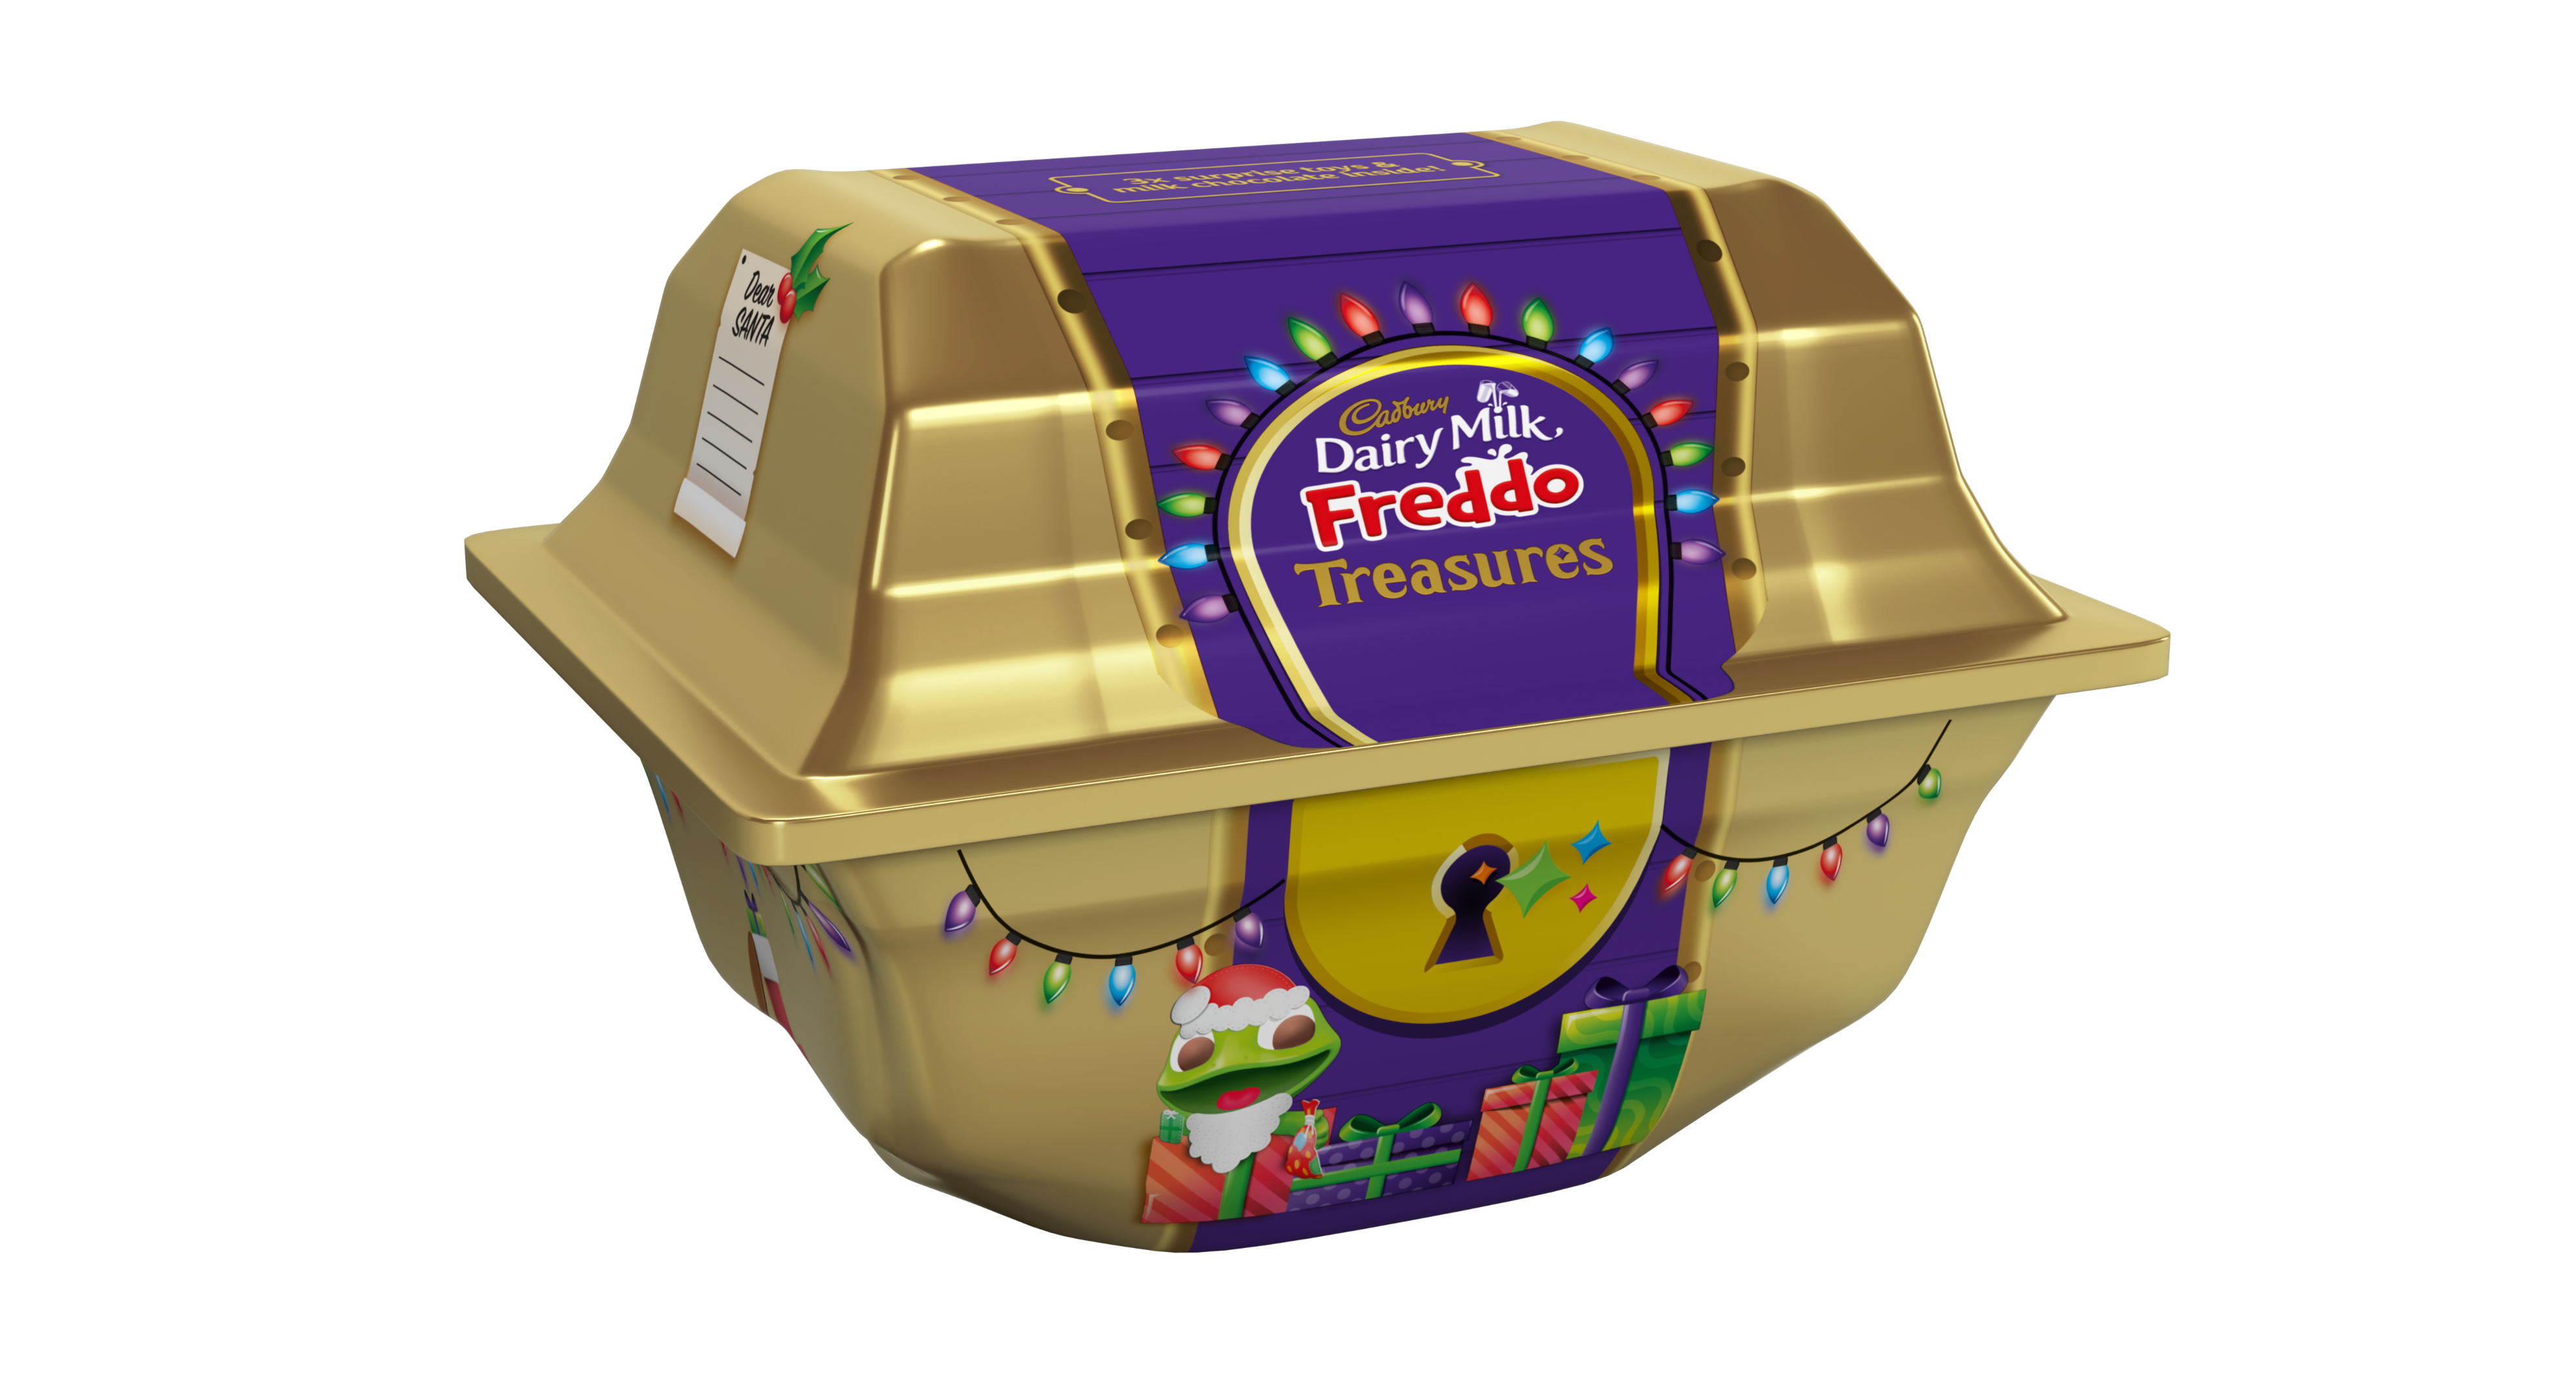 New Products For Christmas 2020 Mondelēz unveils new products for Christmas 2020 portfolio